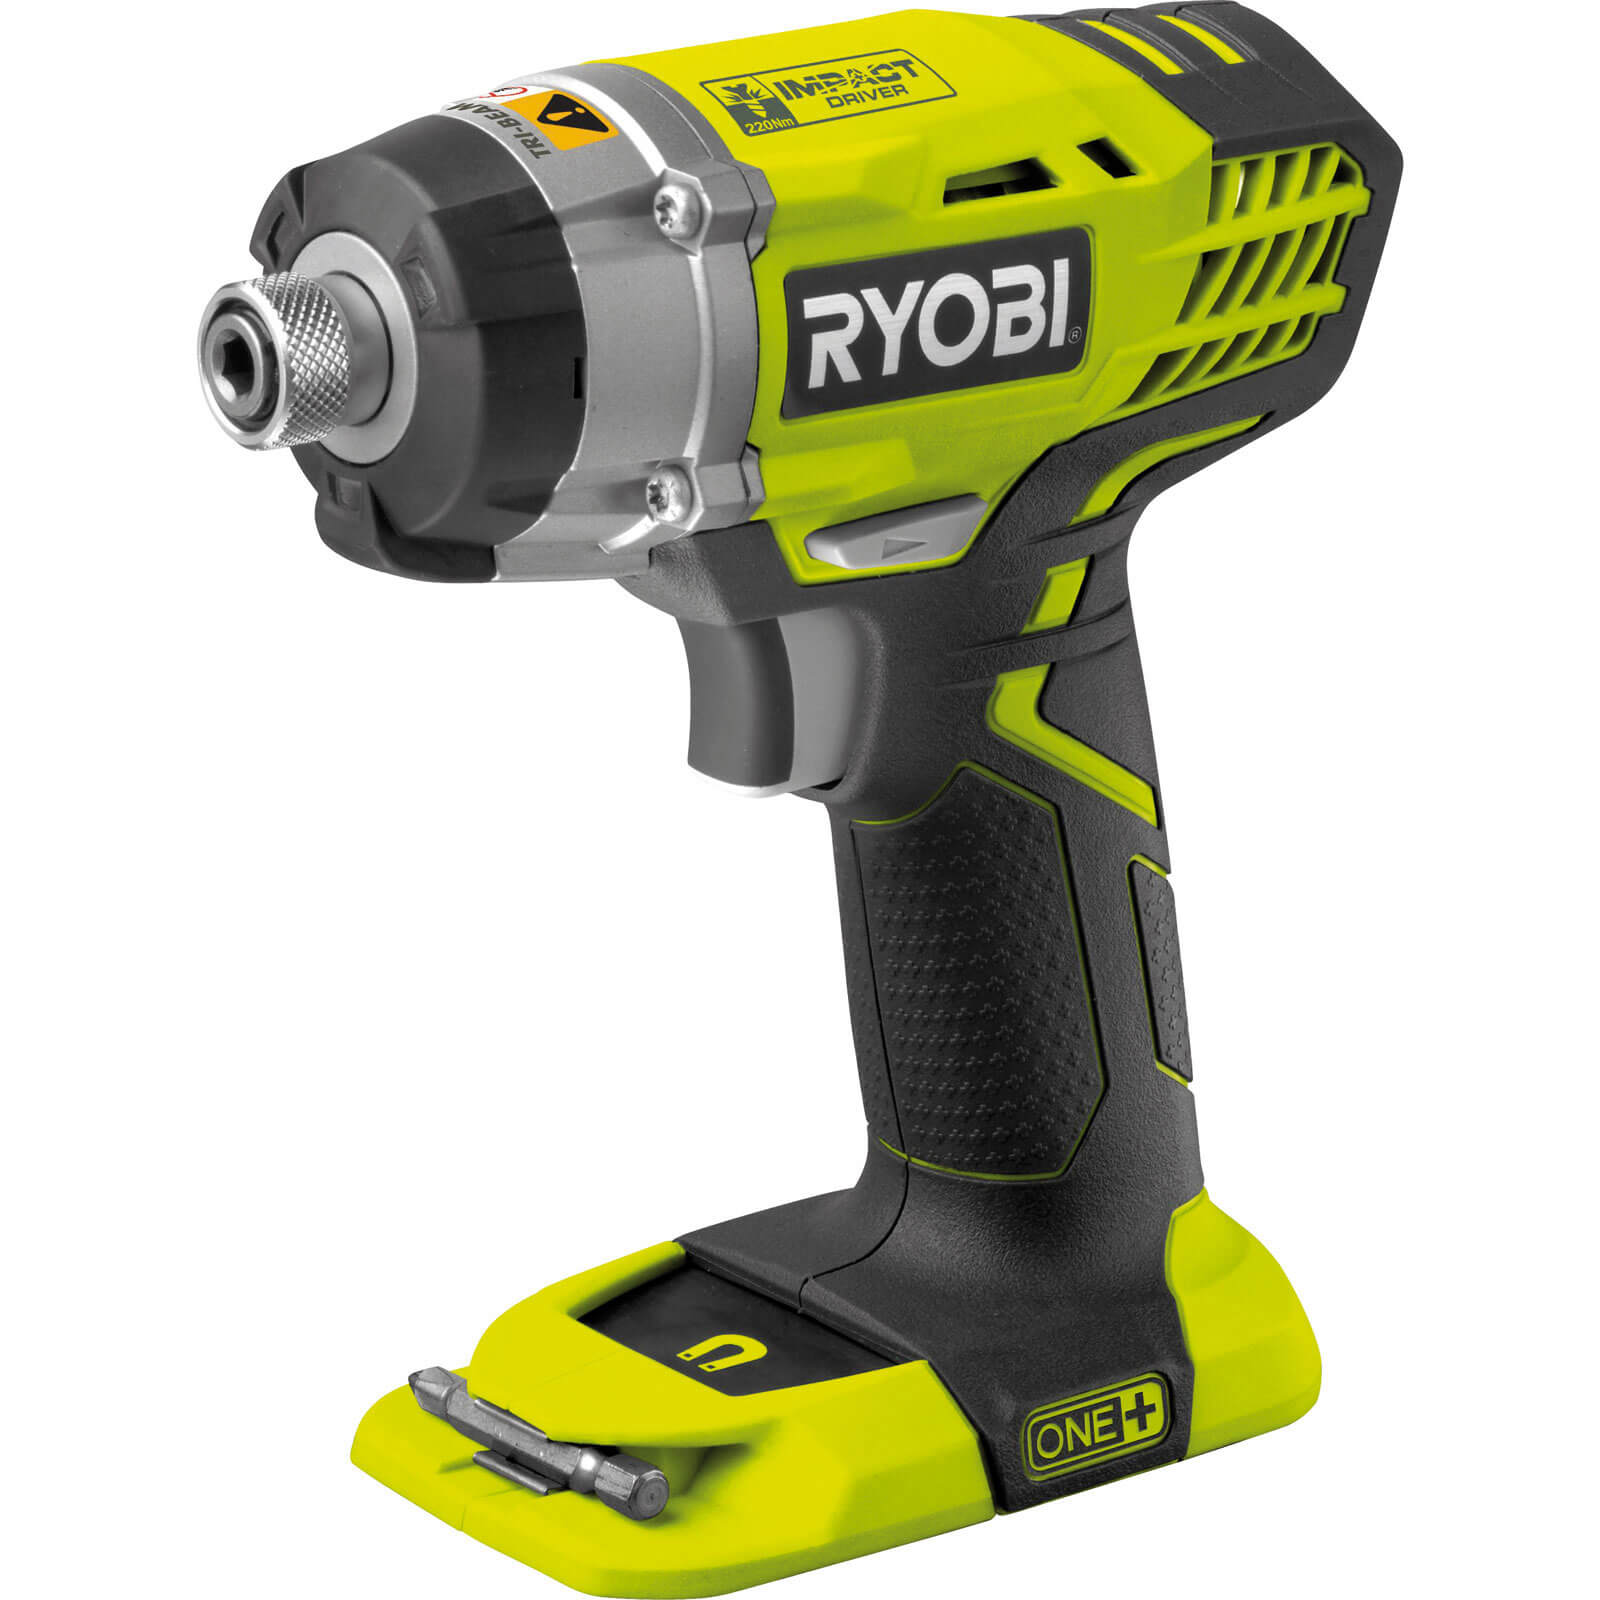 ryobi one plus cordless 18v drill rid1801m. Black Bedroom Furniture Sets. Home Design Ideas